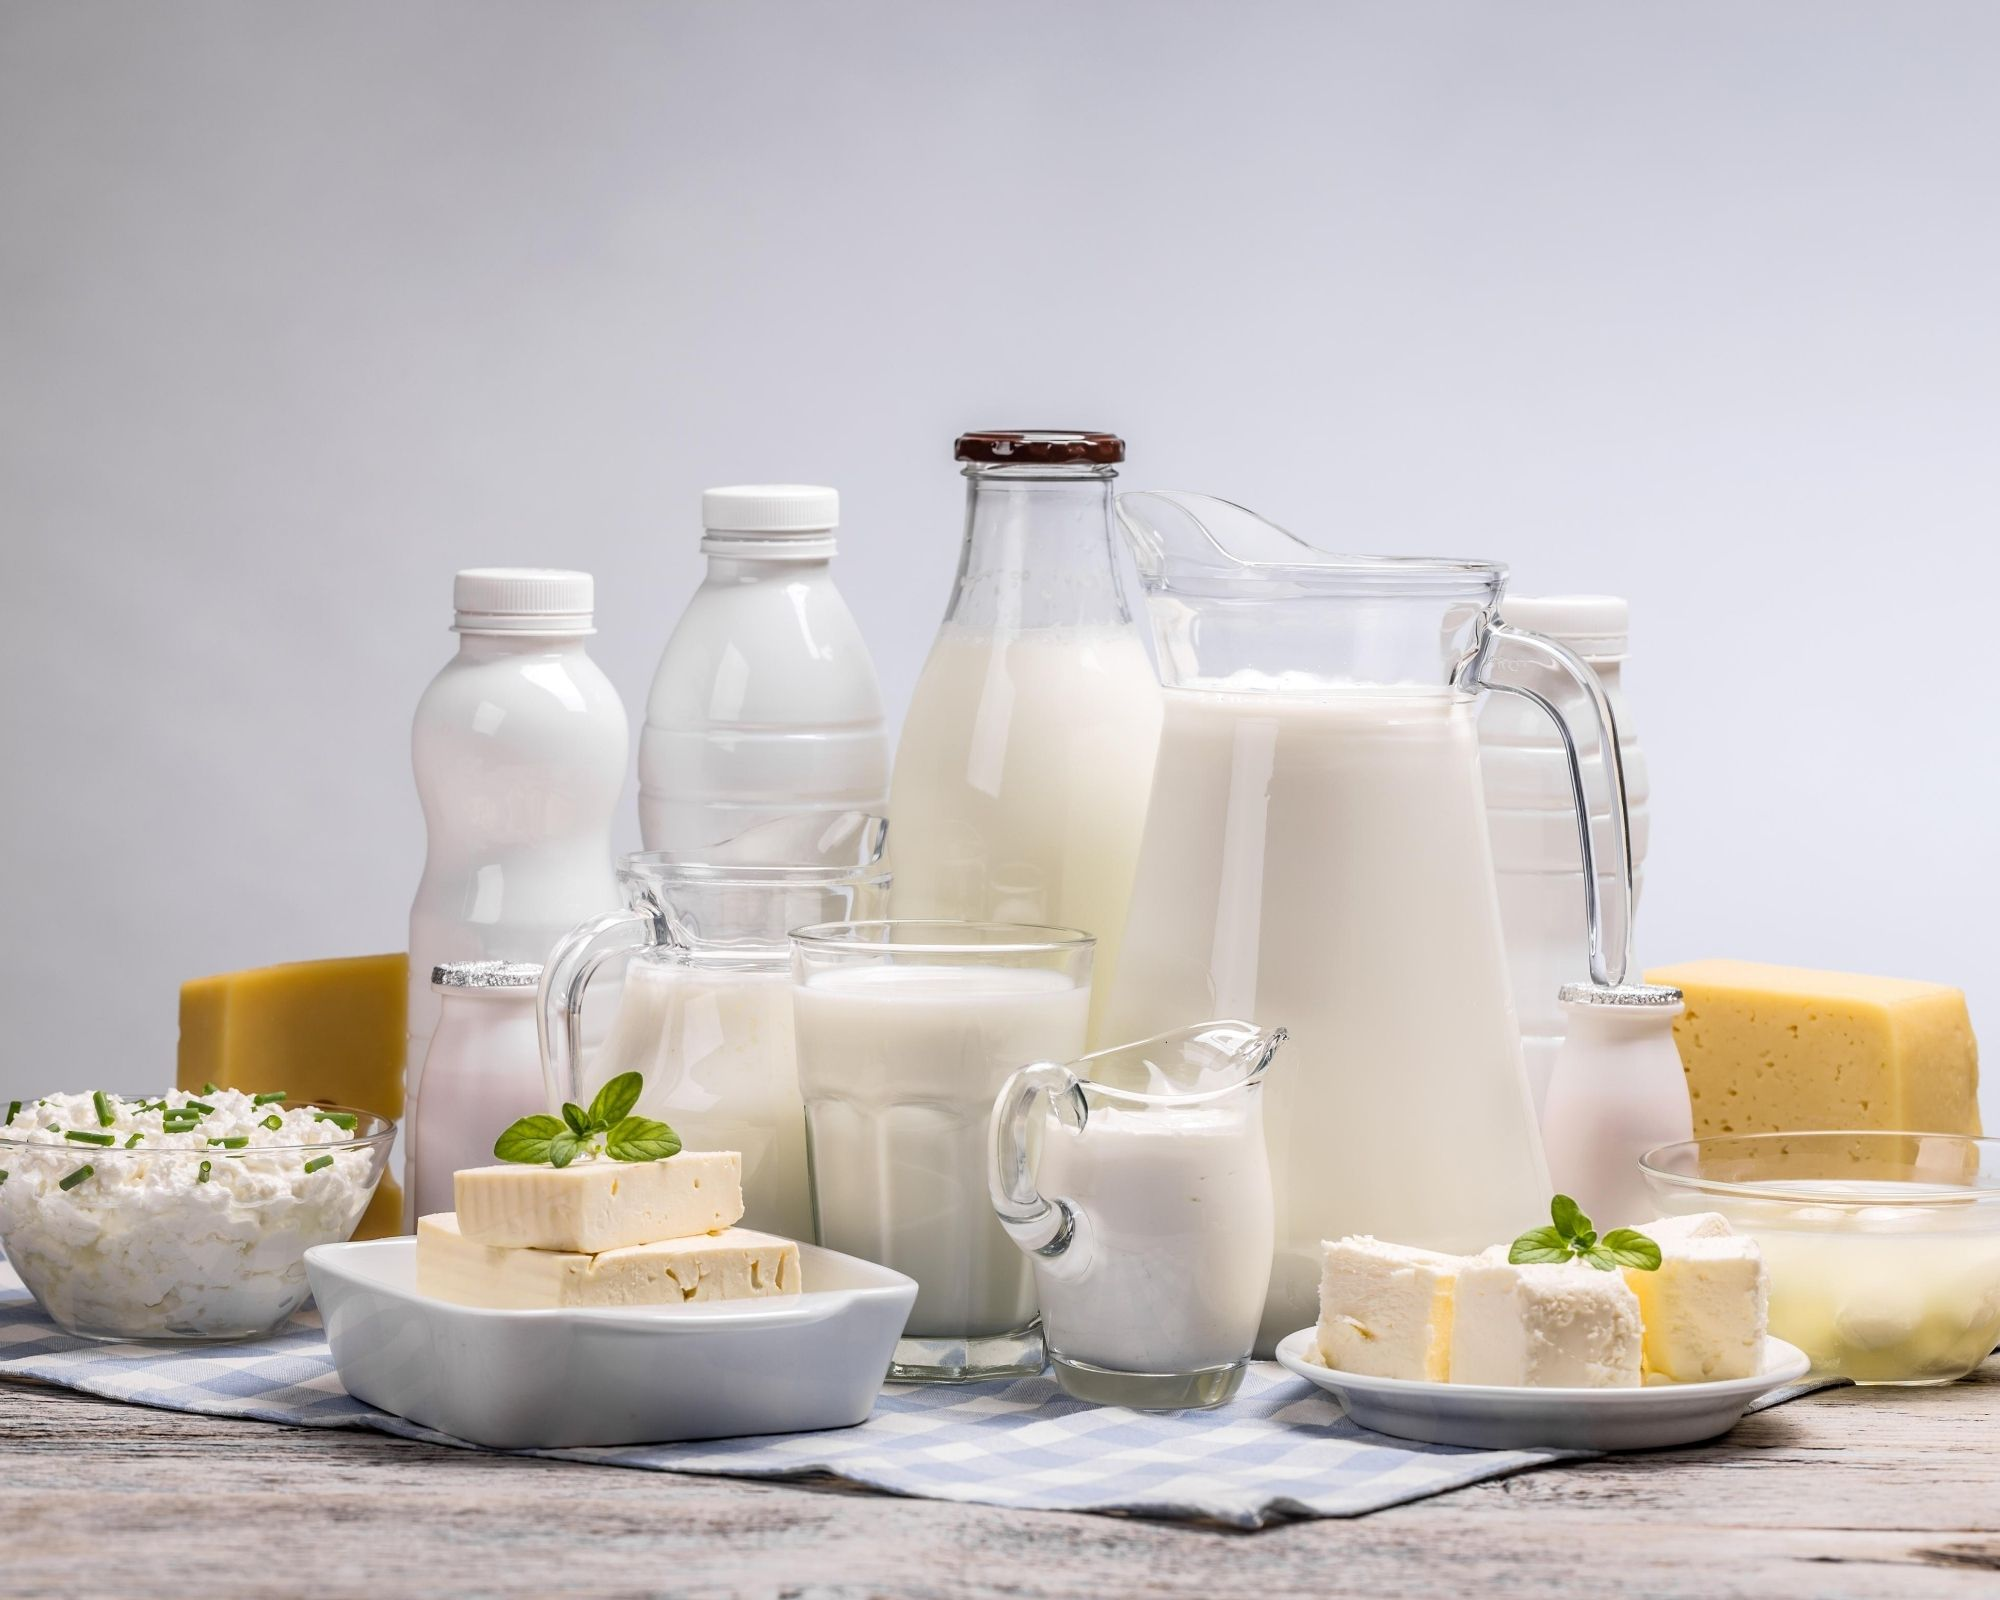 Milk, Cheese, Yogurt, butter on a table.